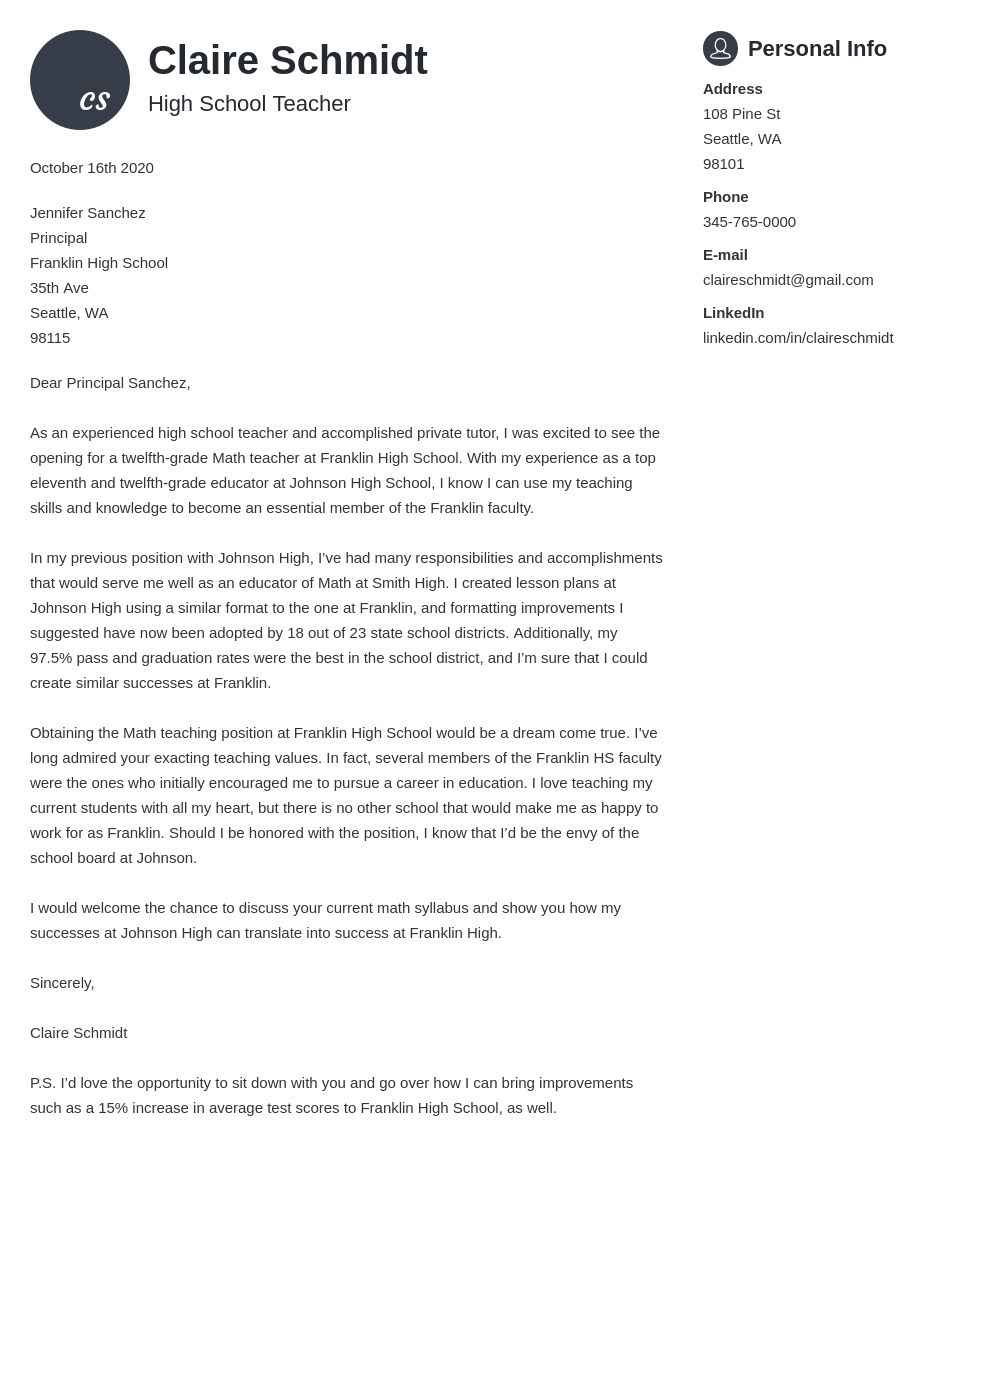 Popular cover letter ghostwriting websites online help with my management problem solving